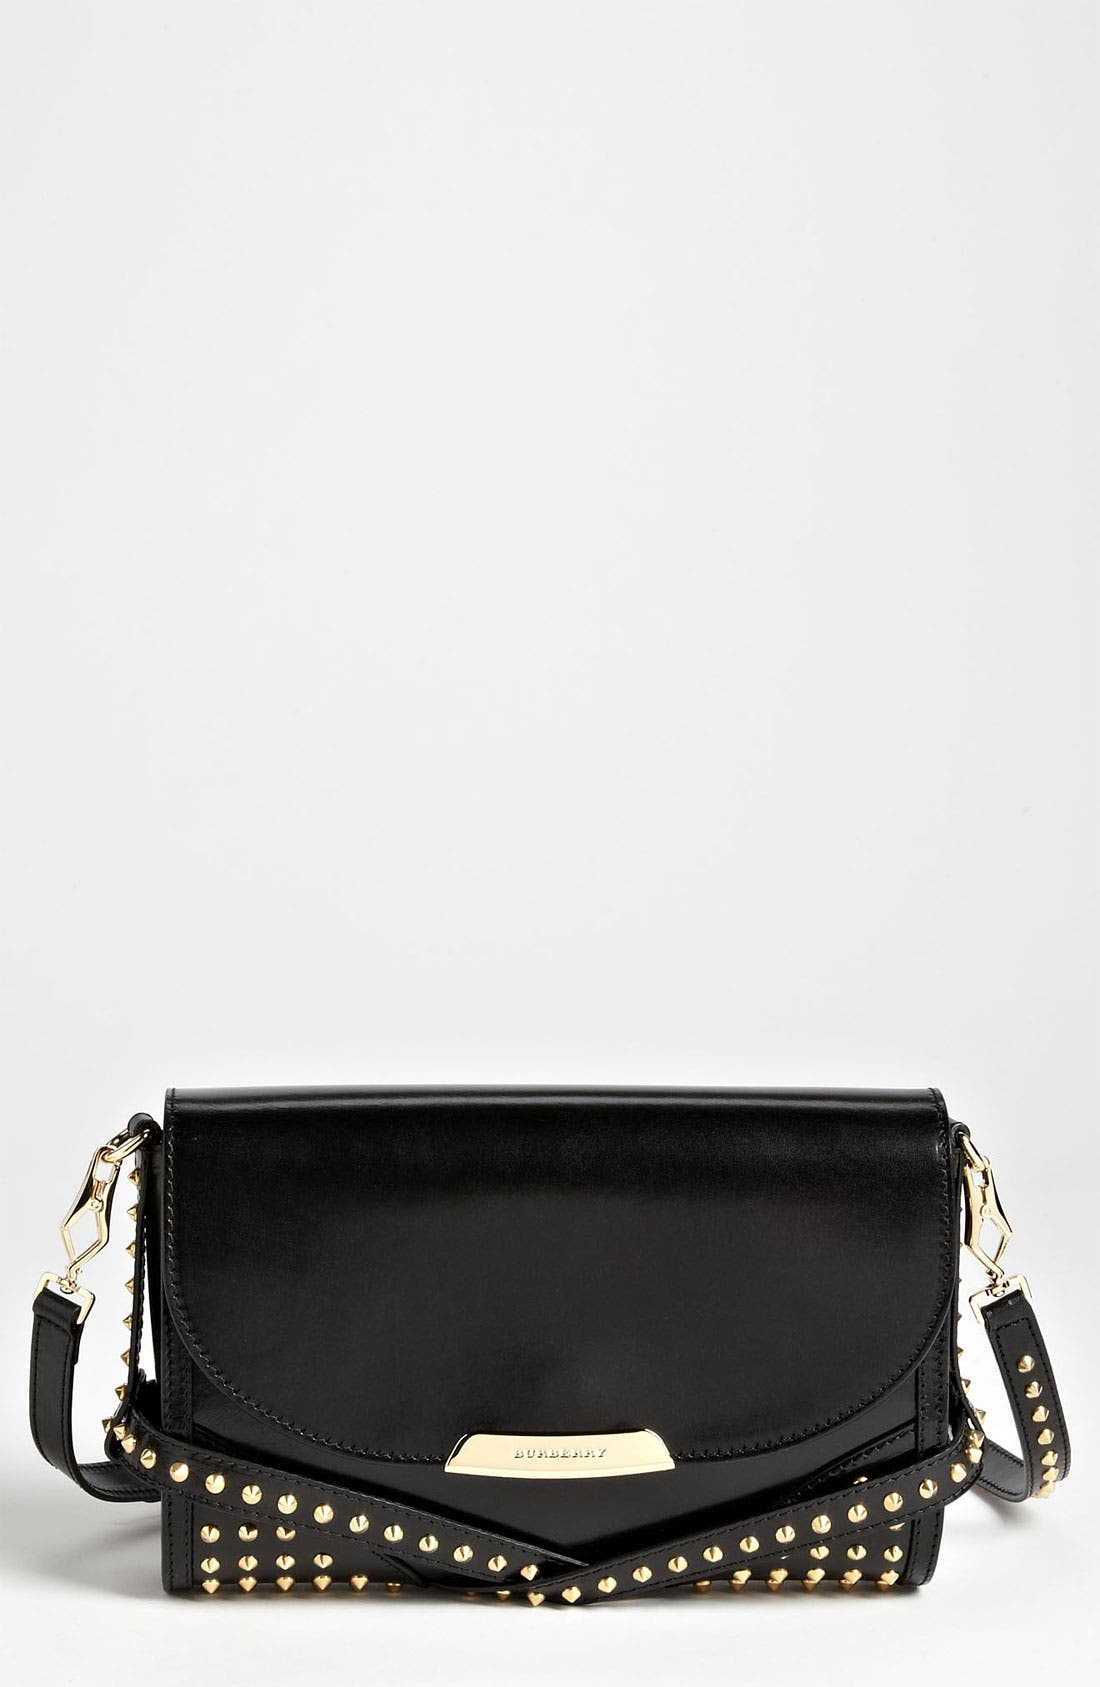 Alternate Image 1 Selected - Burberry 'Bridle Studs' Leather Crossbody Bag